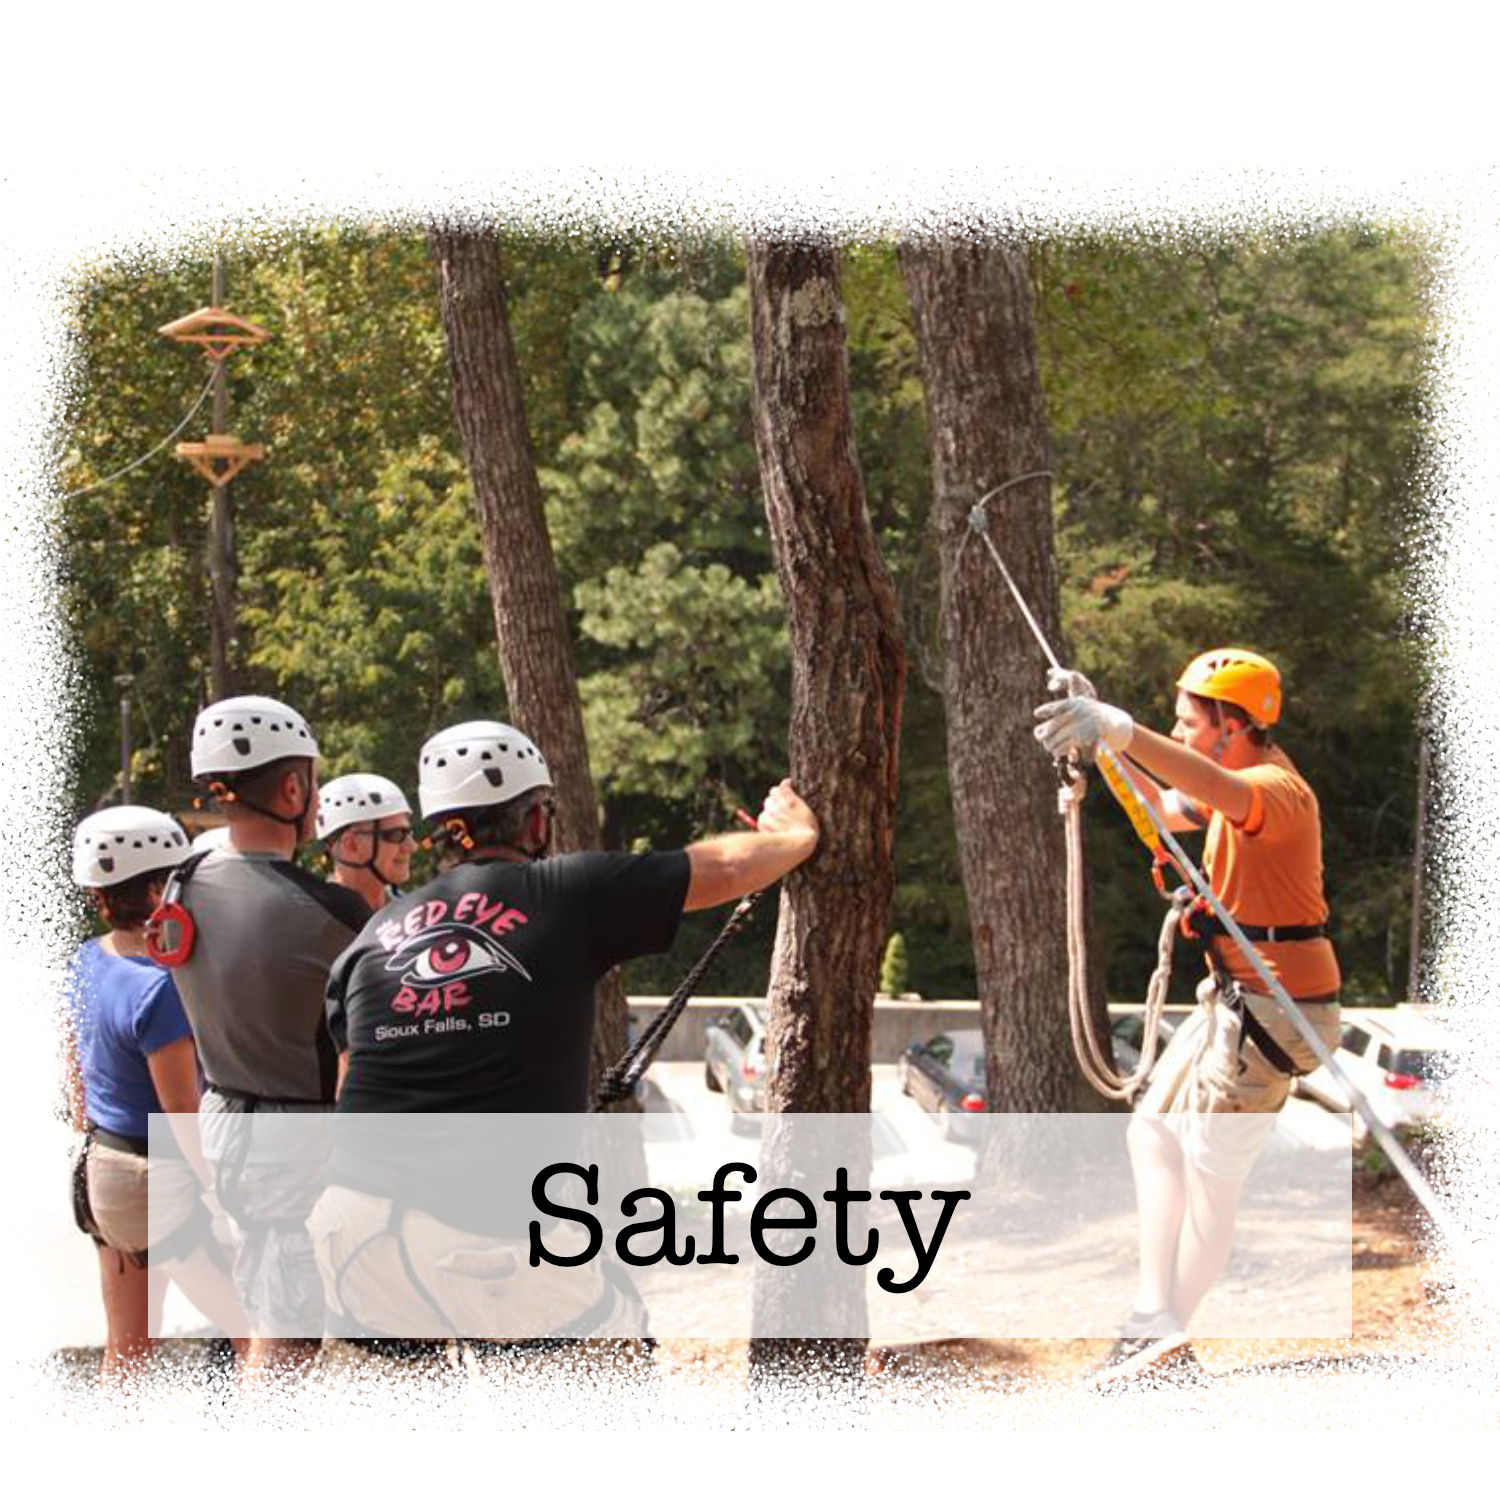 Safety Homepage Photo